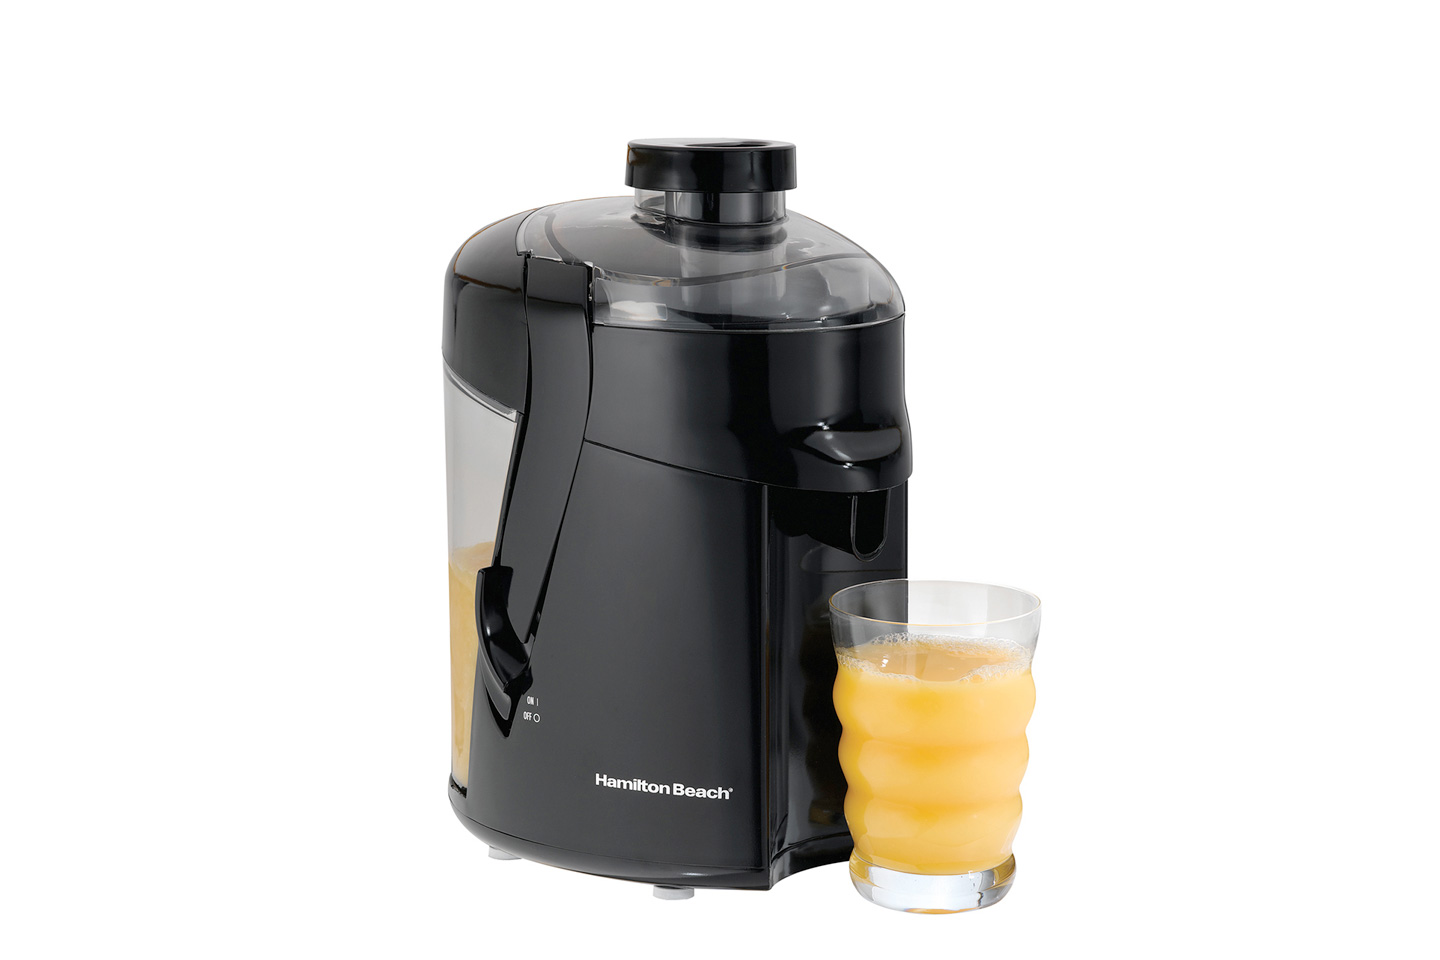 Hamilton Beach HealthSmart Juice Extractor Review | HeartyBlends.co